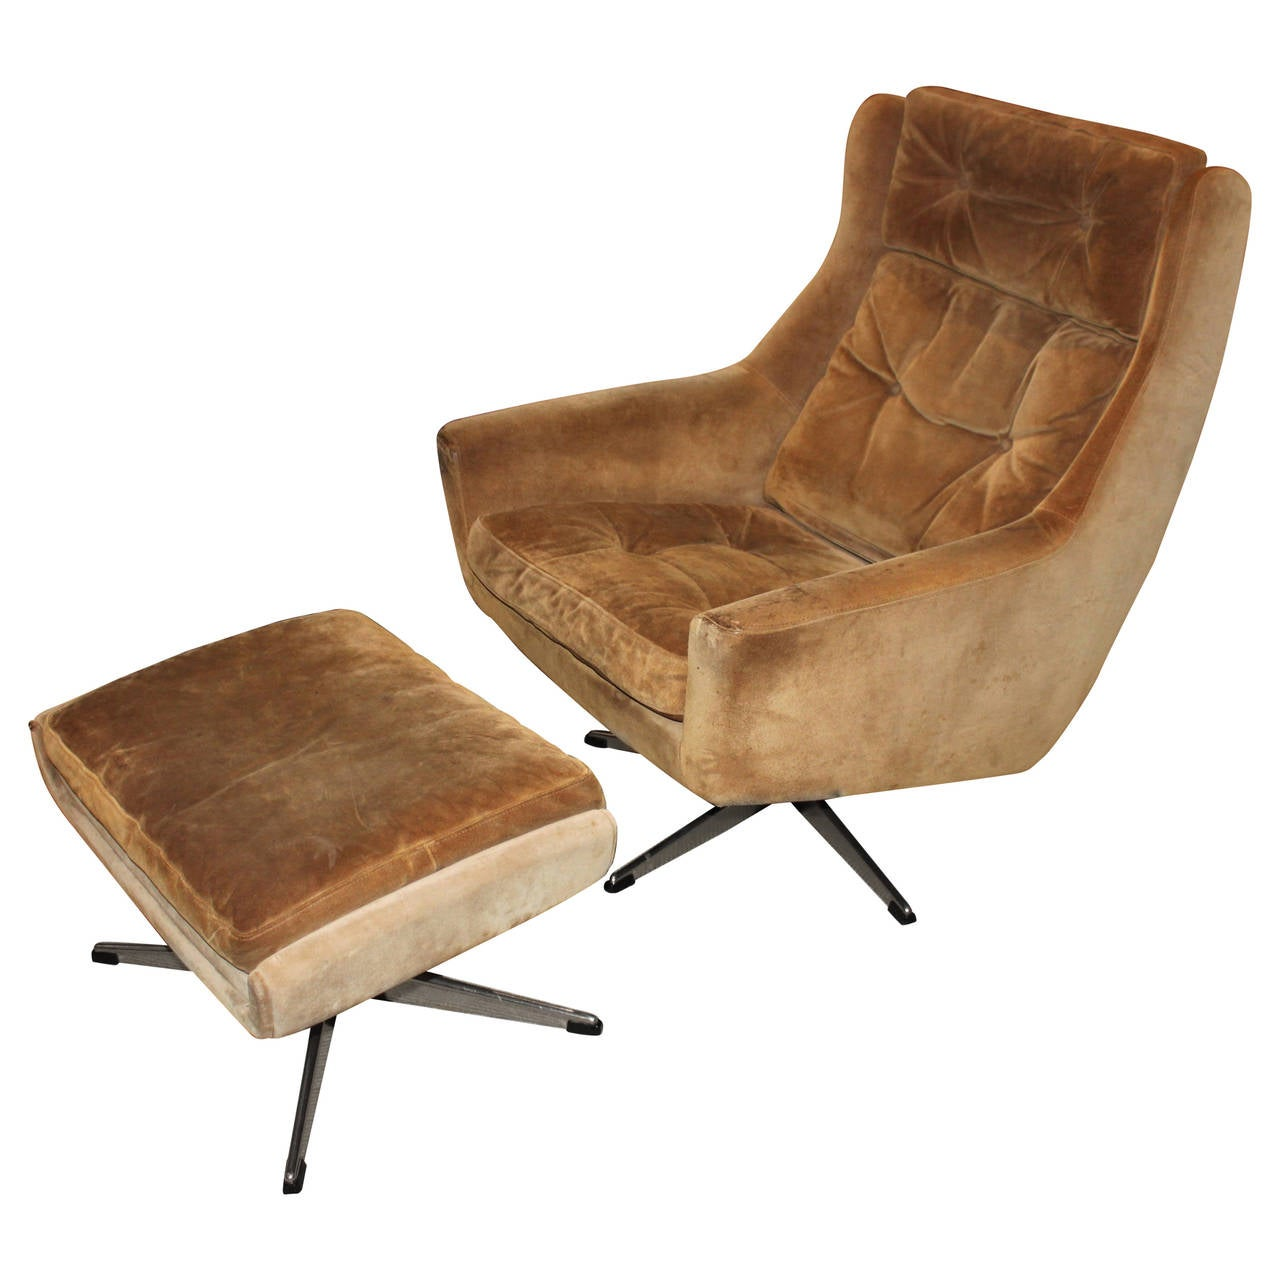 Modern Lounge Chairs Mid Century Modern Overman Lounge Chair With Ottoman At